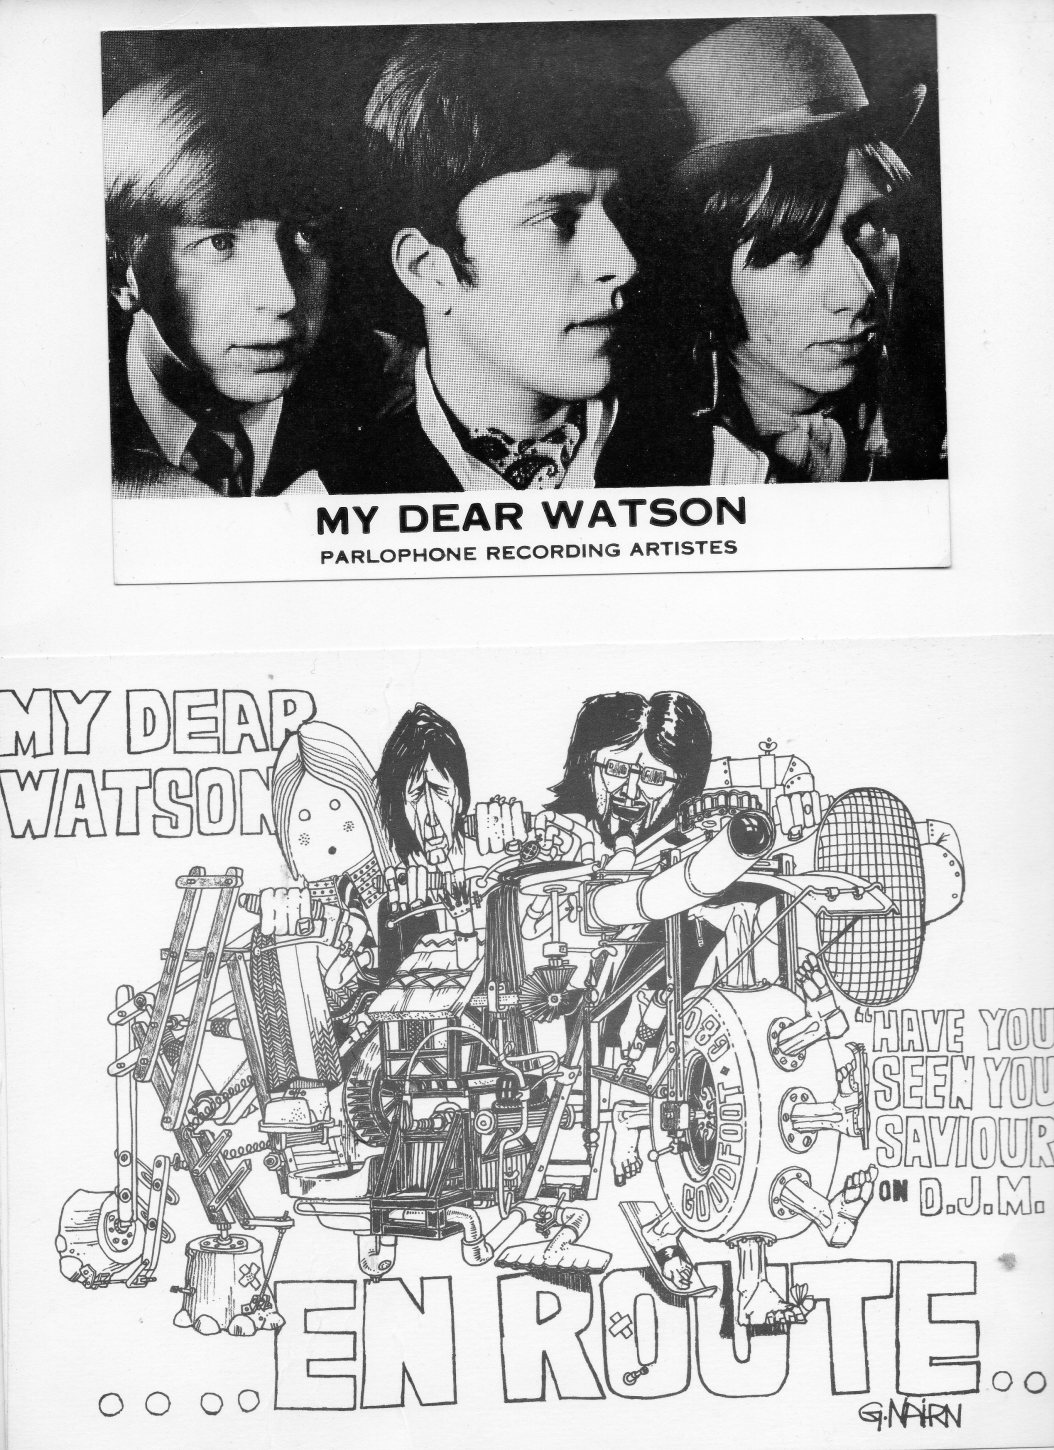 Band members of My Dear Watson [aka Copycats] felt that Graeme Nairn helped them more than the record company to promote their singles.